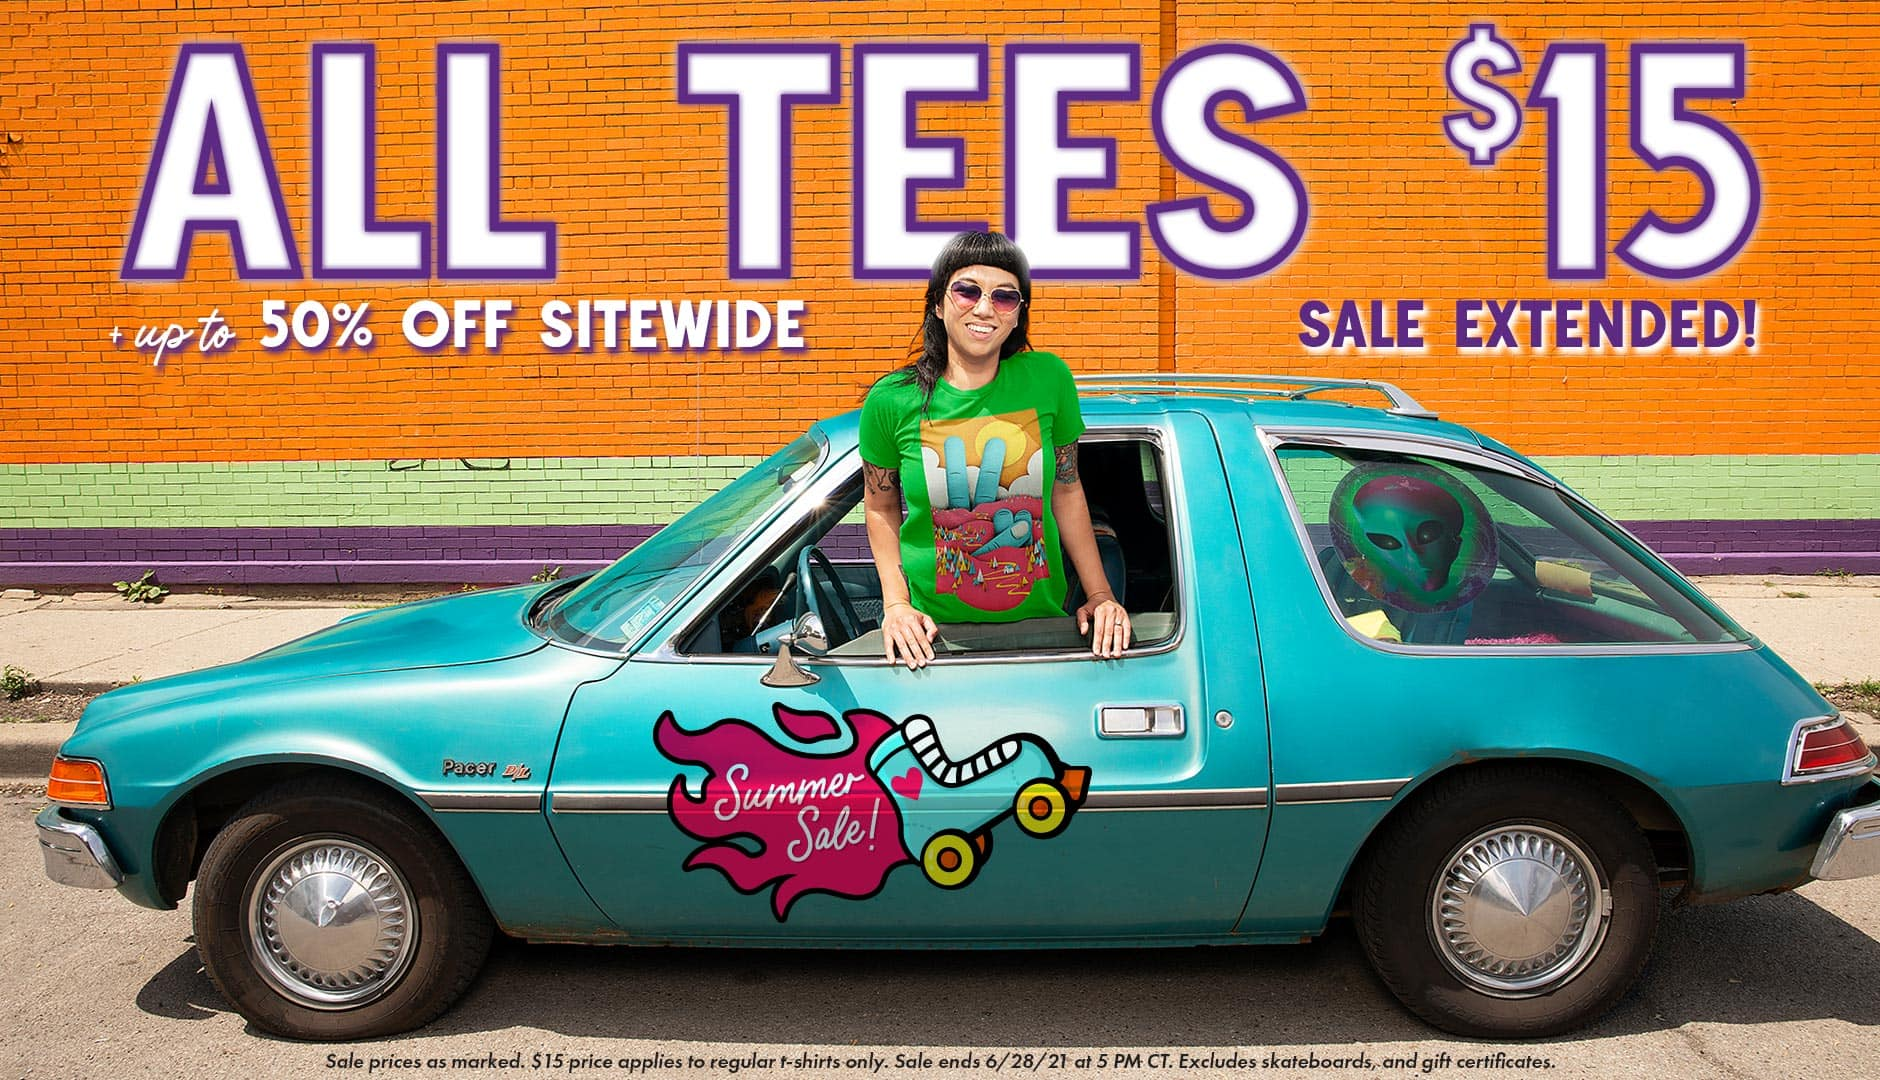 All tees $15 plus up to 50% off sitewide